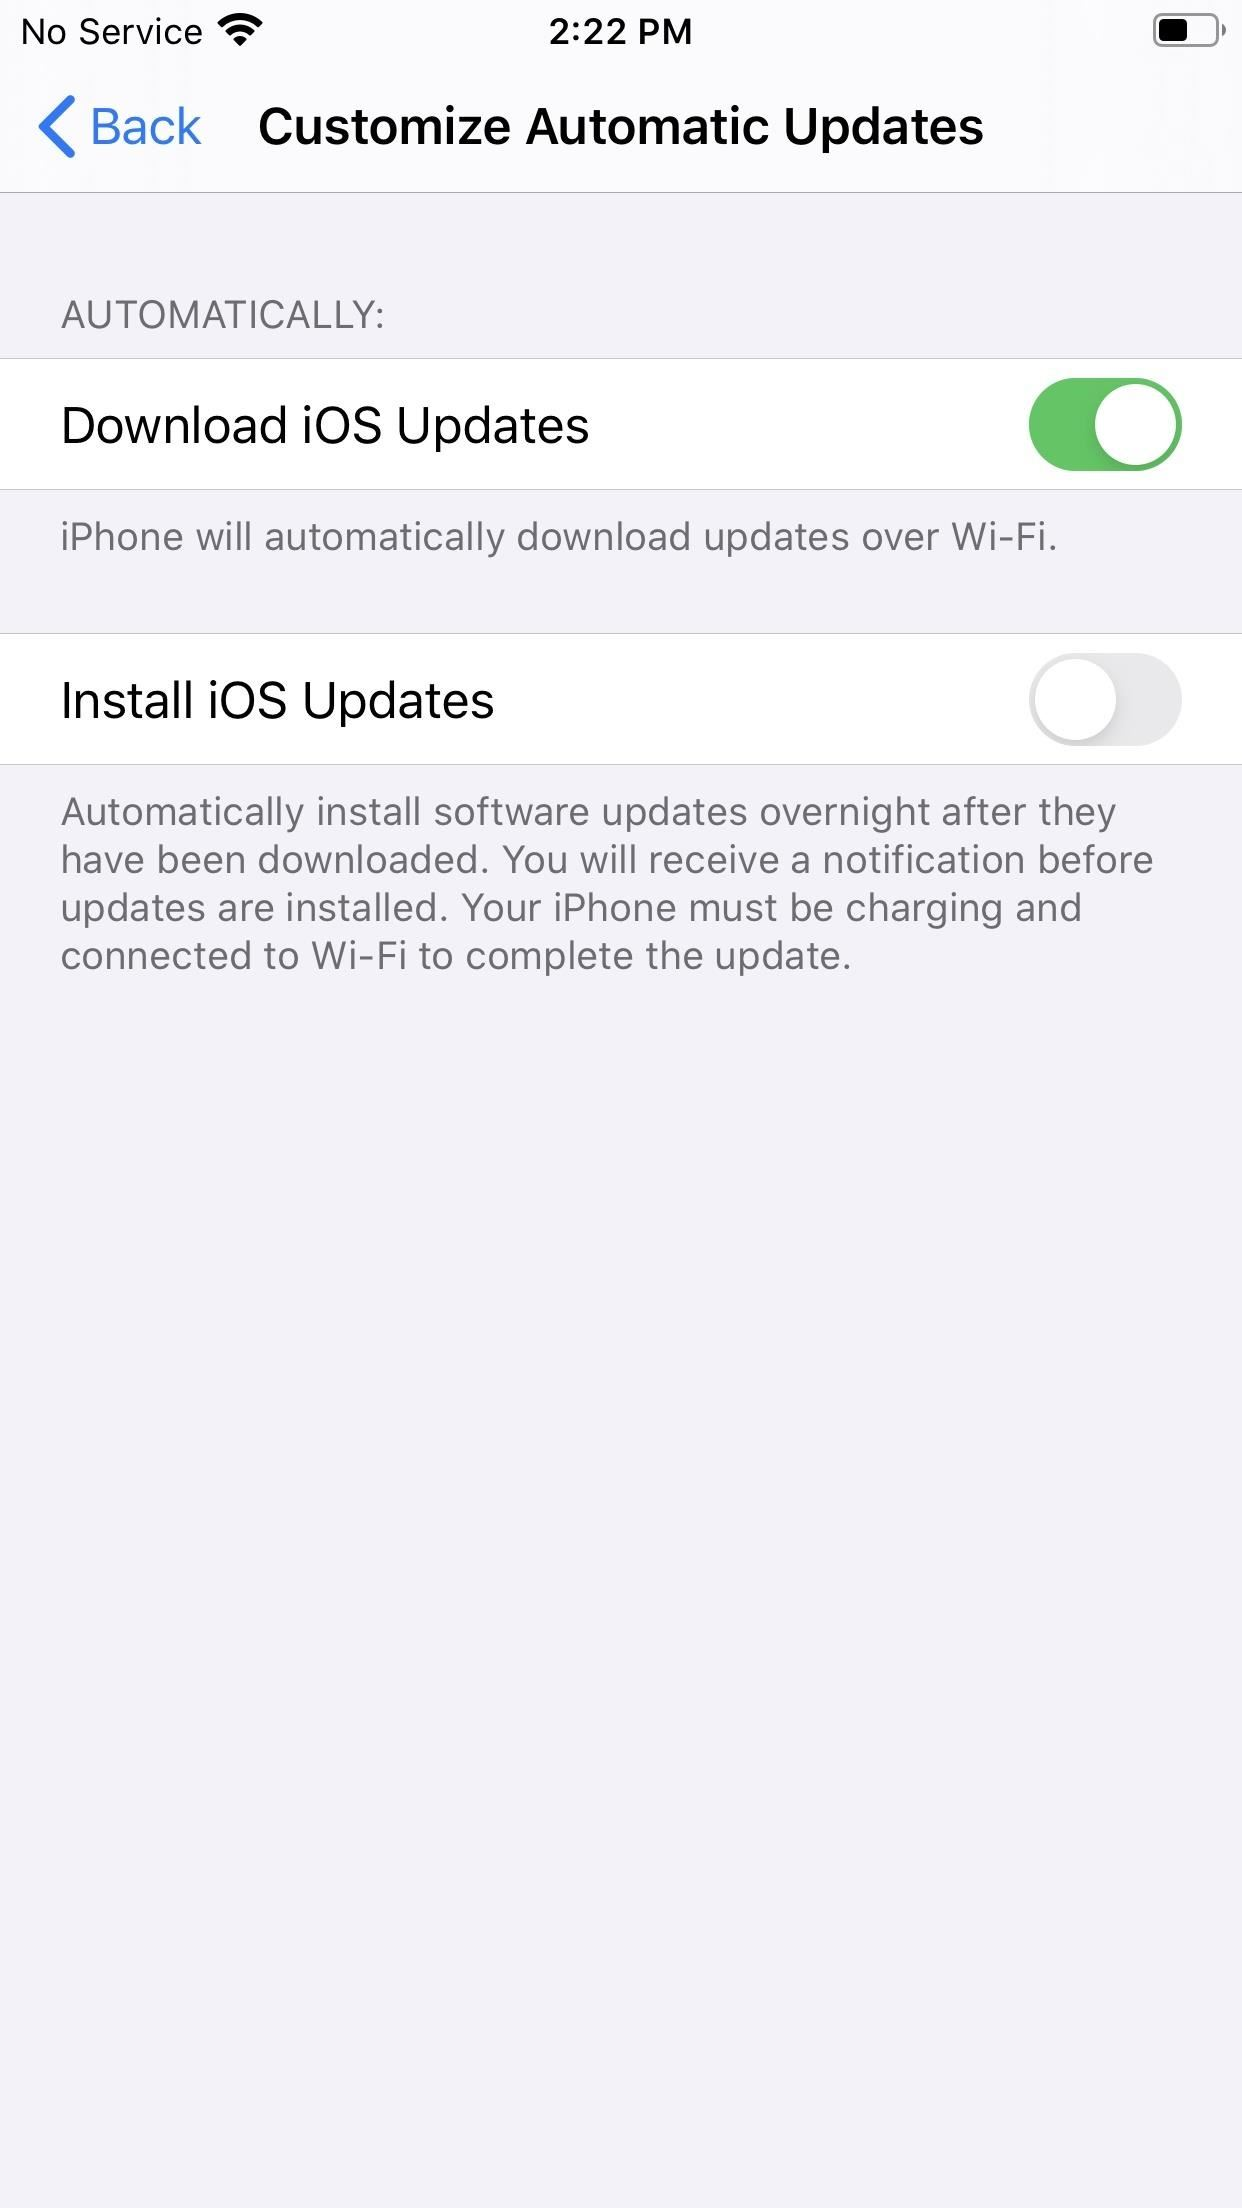 Apple's iOS 13.6 Public Beta 2 for iPhone Includes Option to Automatically Download New Updates